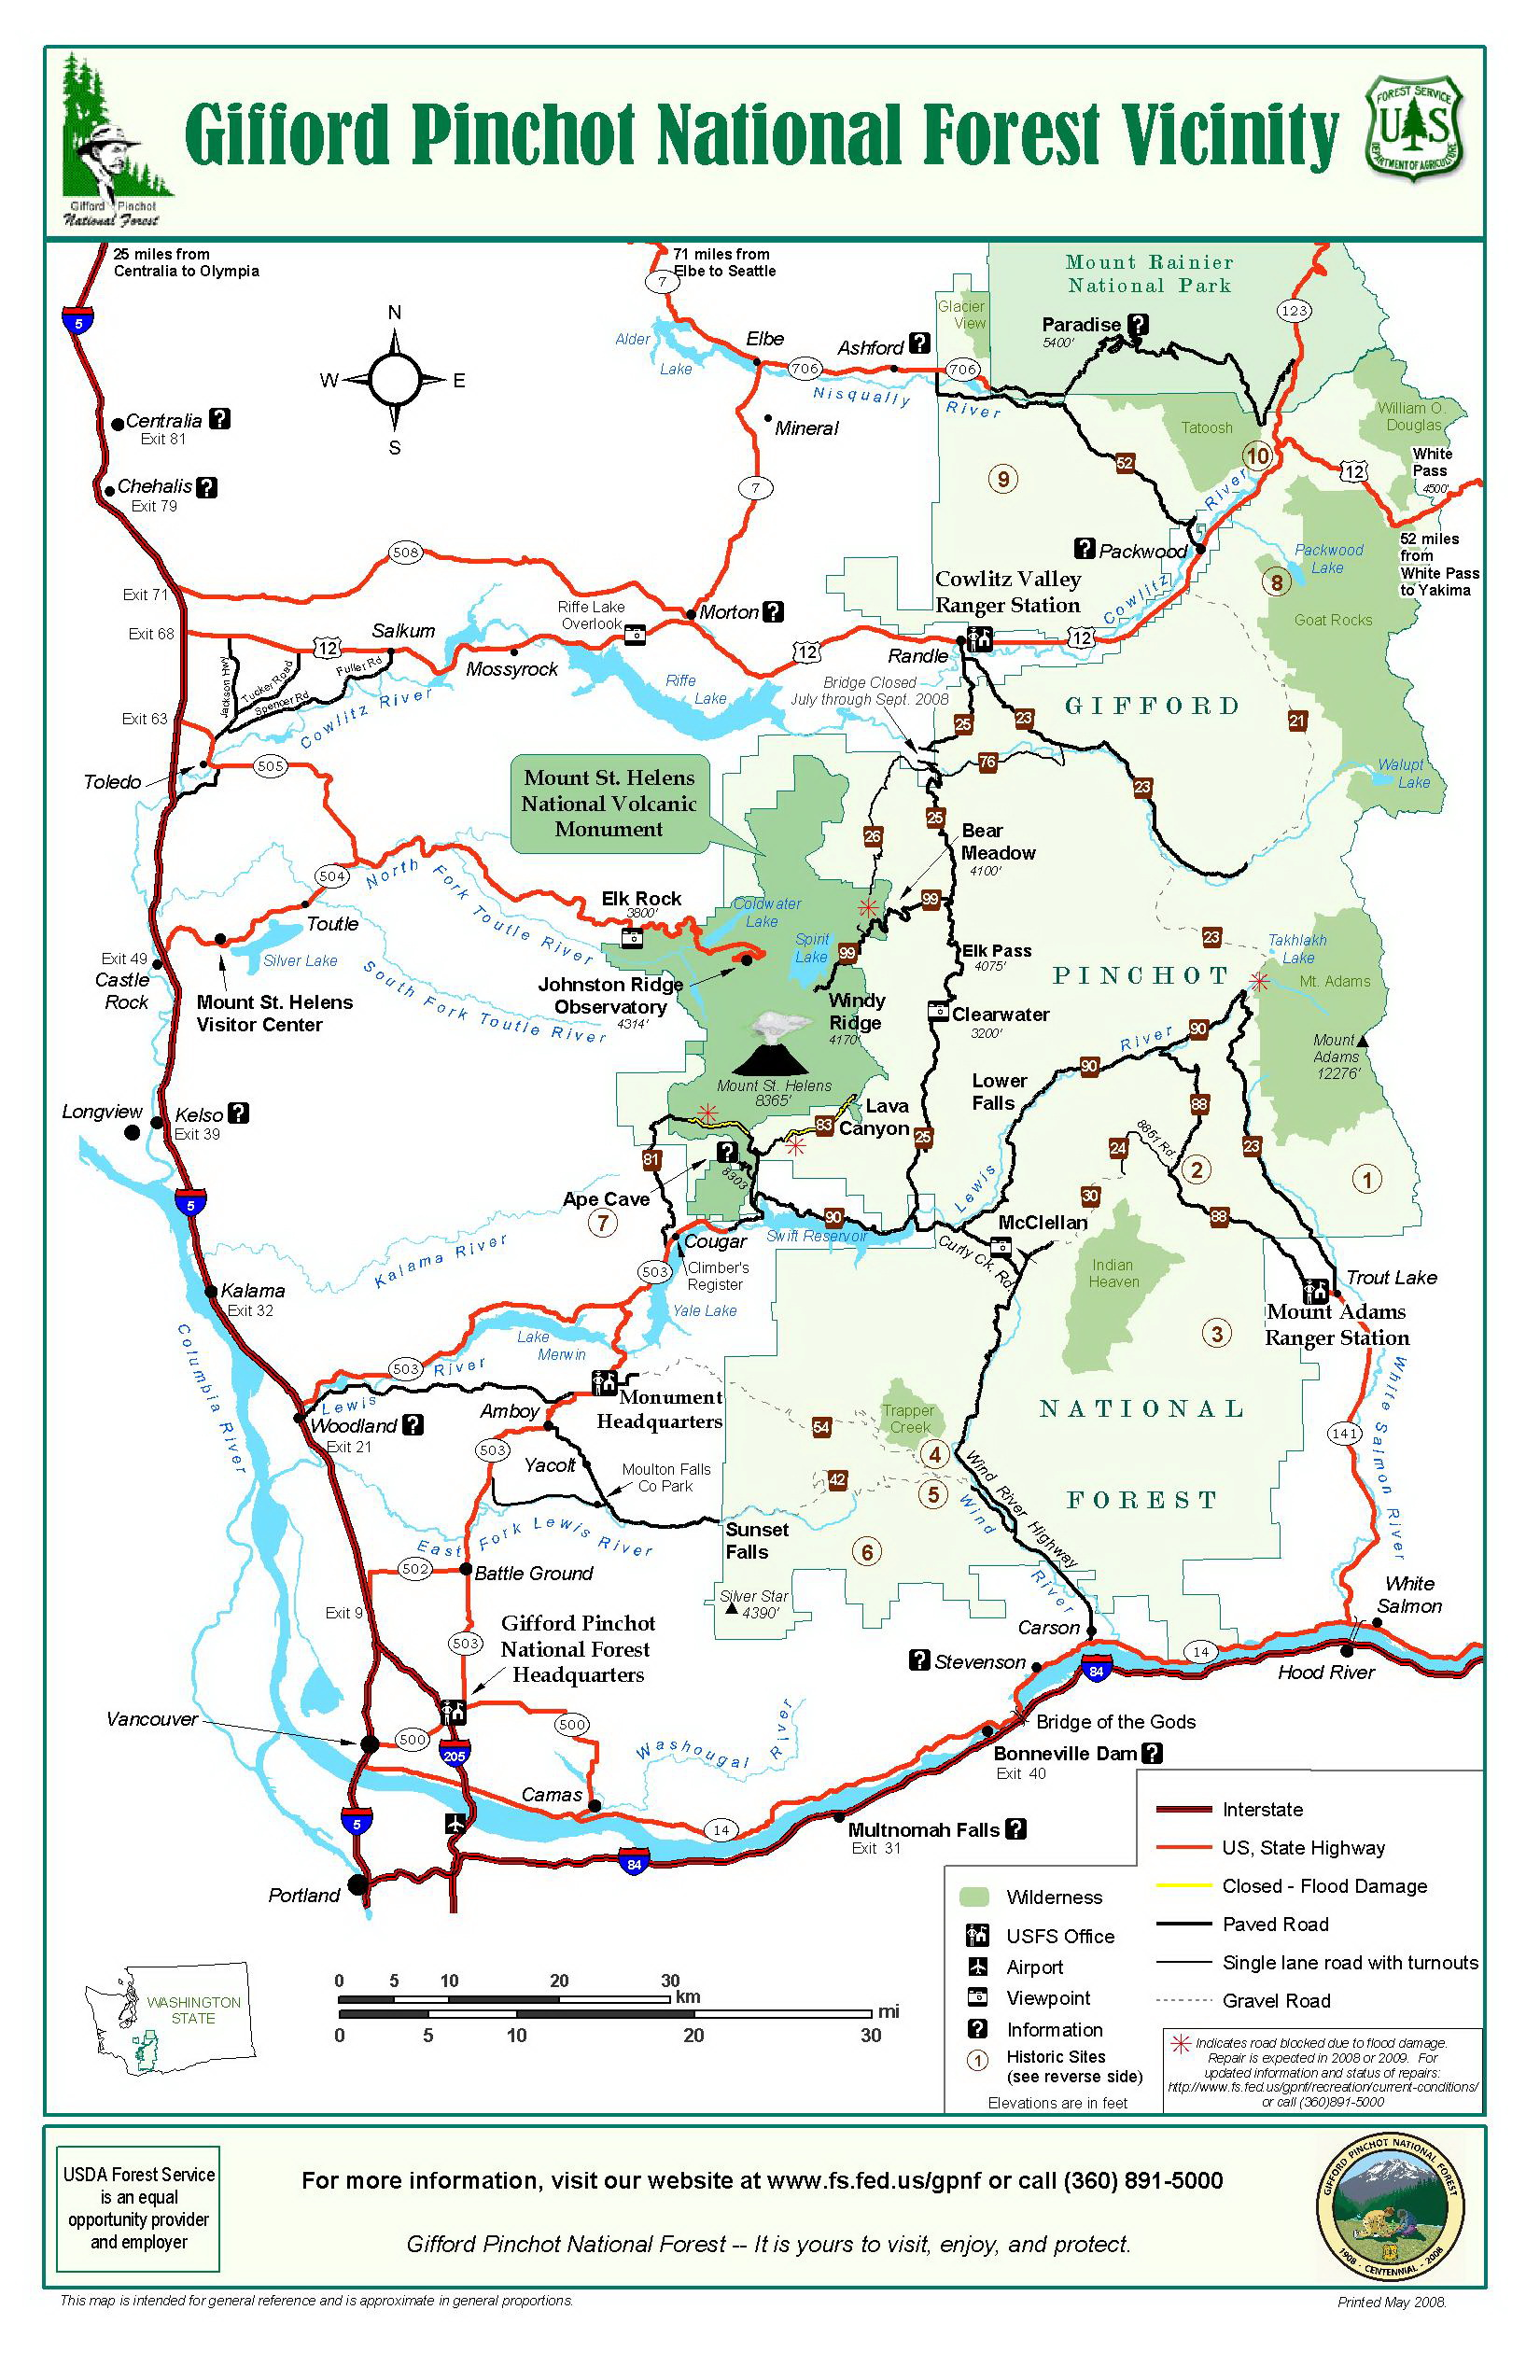 Gifford Pinchot National Forest Vicinity Map   Gifford Pinchot